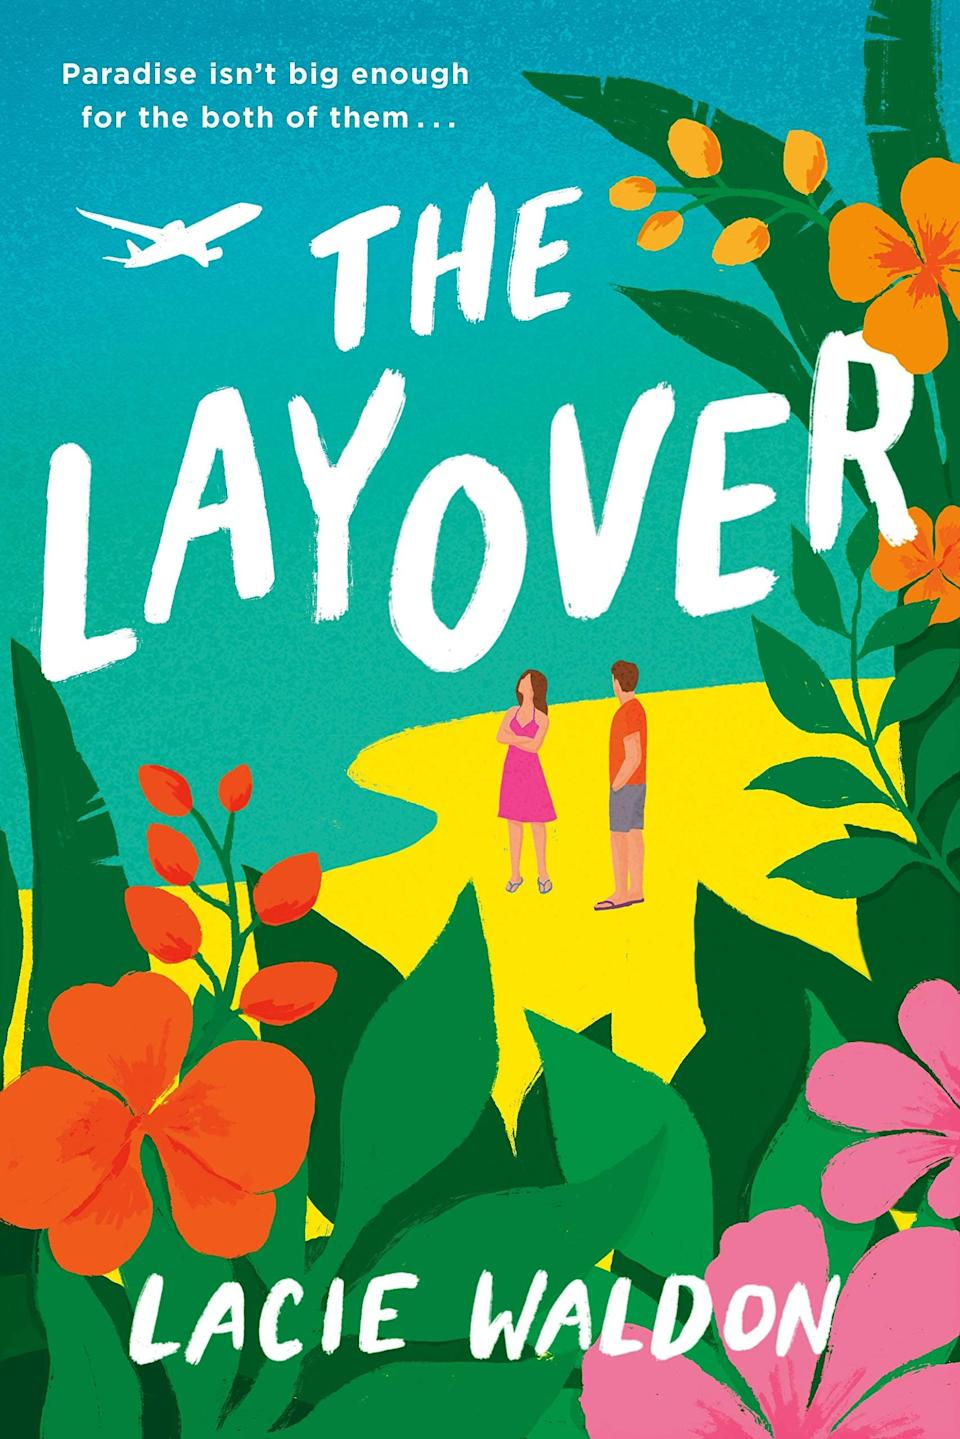 <p>A mechanical malfunction strands a flight attendant in paradise with her worst enemy in <span><strong>The Layover</strong></span> by Lacie Waldon. After 10 years of jet-setting as a flight attendant, Ava is ready for a fresh start, but she has to make it through one last flight first. Unfortunately for her, the cocky ex-pilot Jack Stone is also on her flight, and when the plane is forced to make an emergency landing, she'll be stuck with him for the entire weekend.</p> <p><em>Out June 15</em></p>